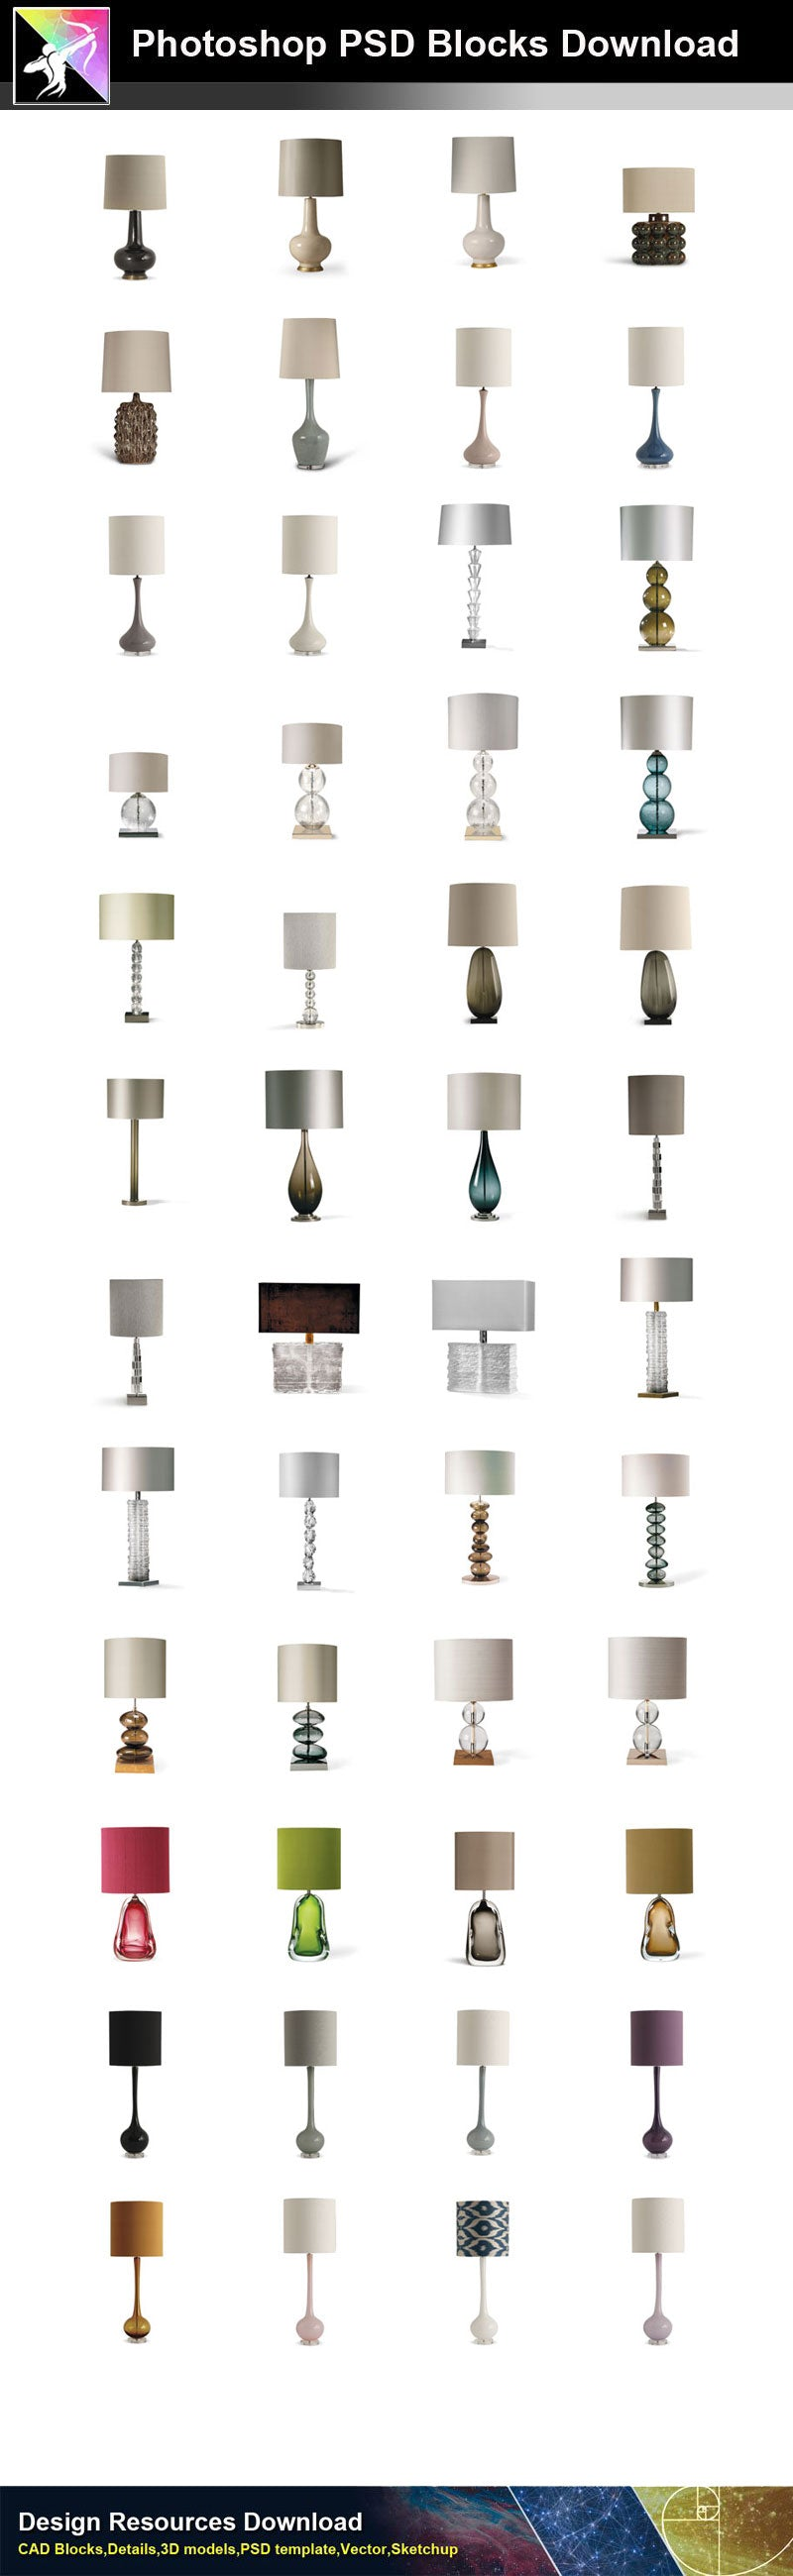 【Photoshop PSD Blocks】Table_Lamps PSD Blocks